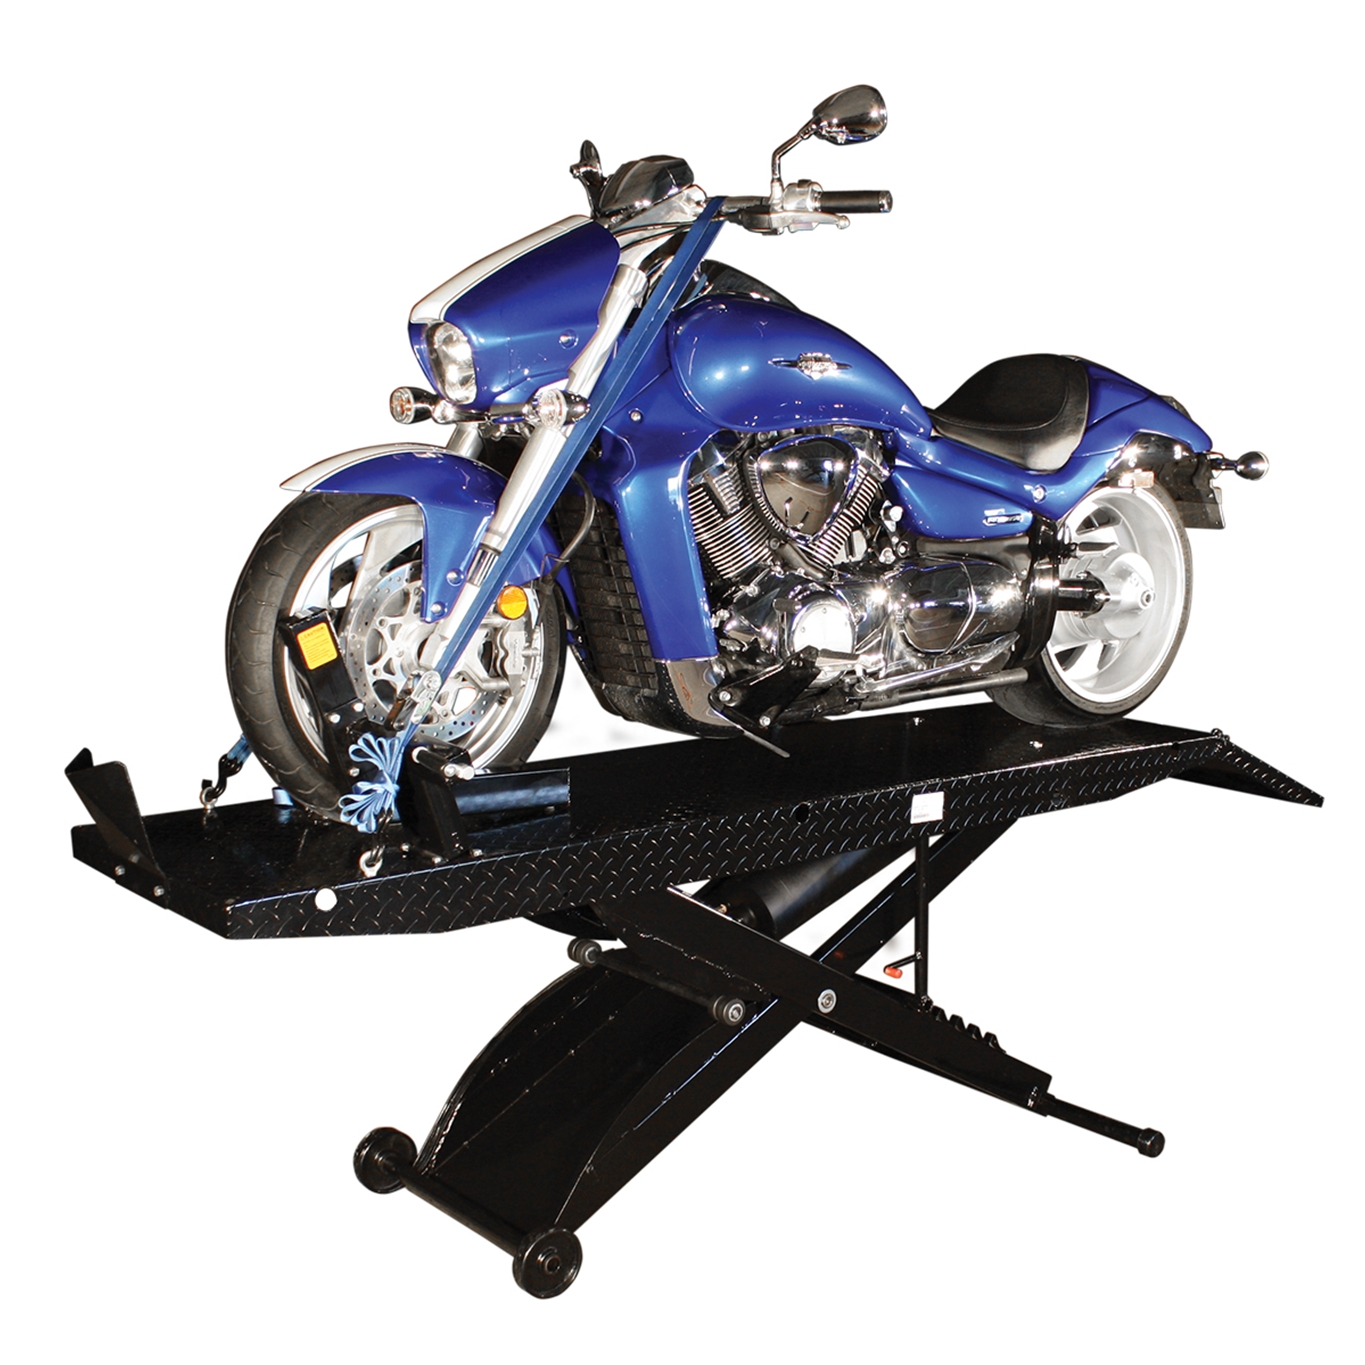 ProCycle Motorcycle Lift